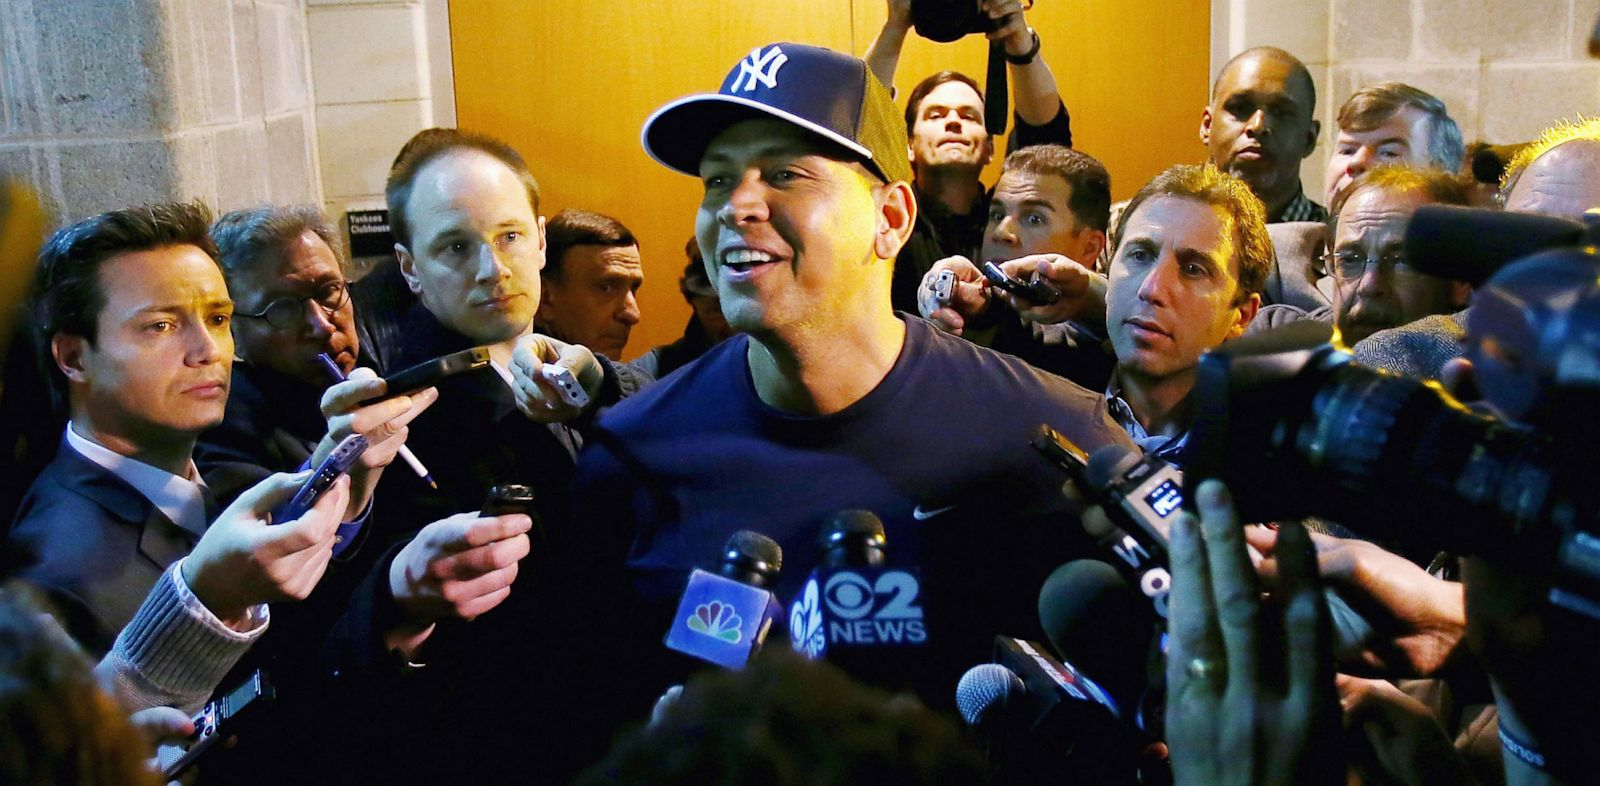 PHOTO: Alex Rodriguez of the New York Yankees answers questions outside the clubhouse before the game against the Boston Red Sox during Opening Day, April 1, 2013 at Yankee Stadium in the Bronx borough of New York City.